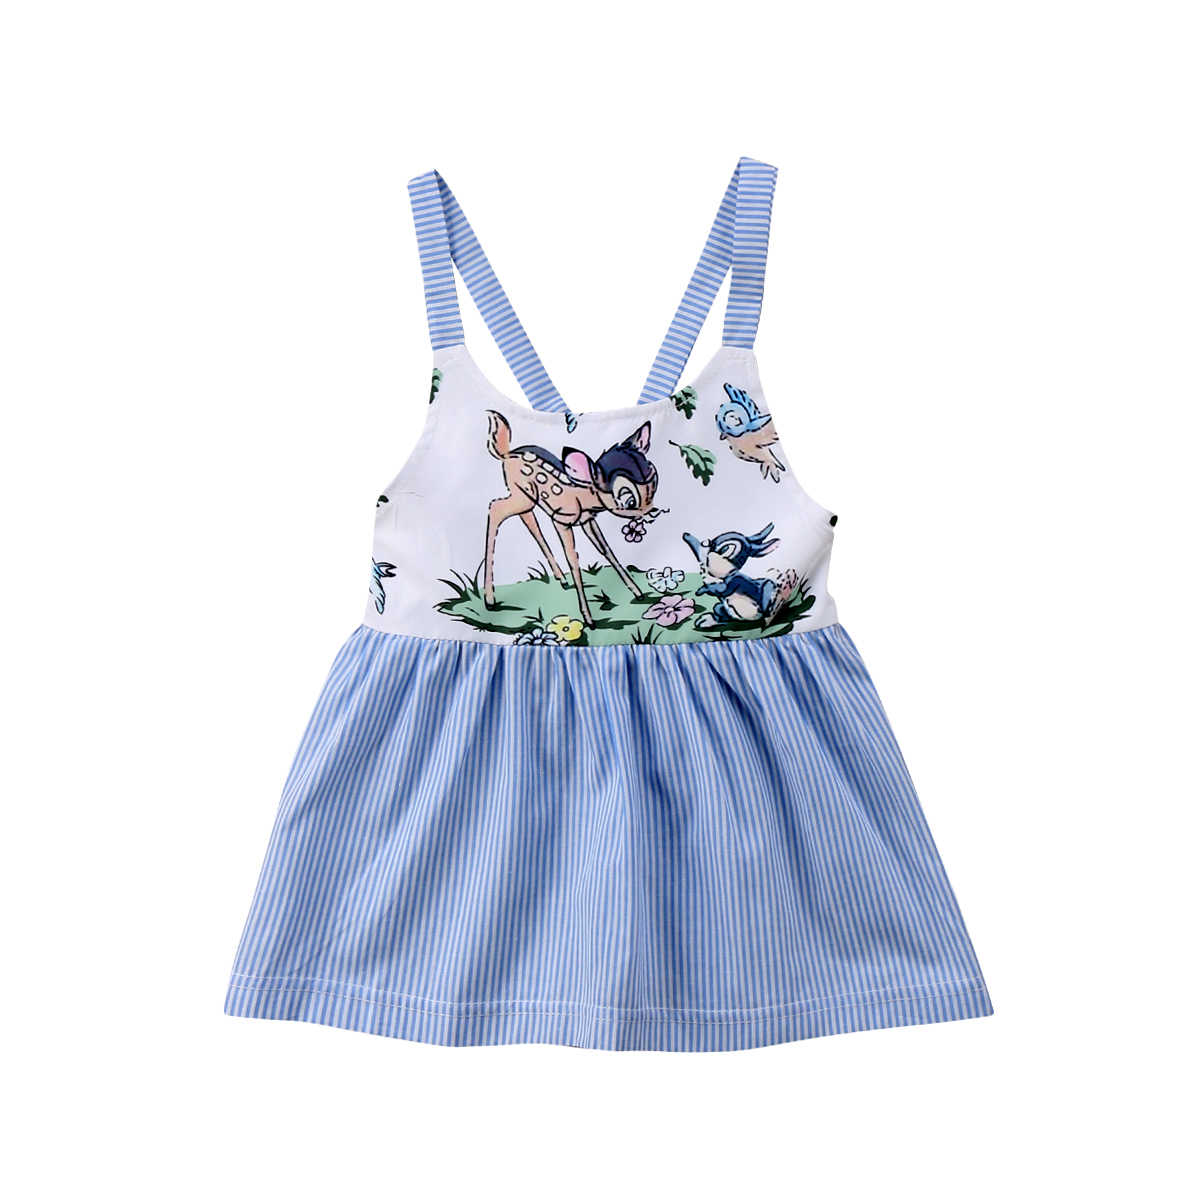 88345edf89c Newborn Toddler Kids Child Baby Girl Stripe Sling Blue Dress Party  Sleeveless Outfits Summer Dress Baby